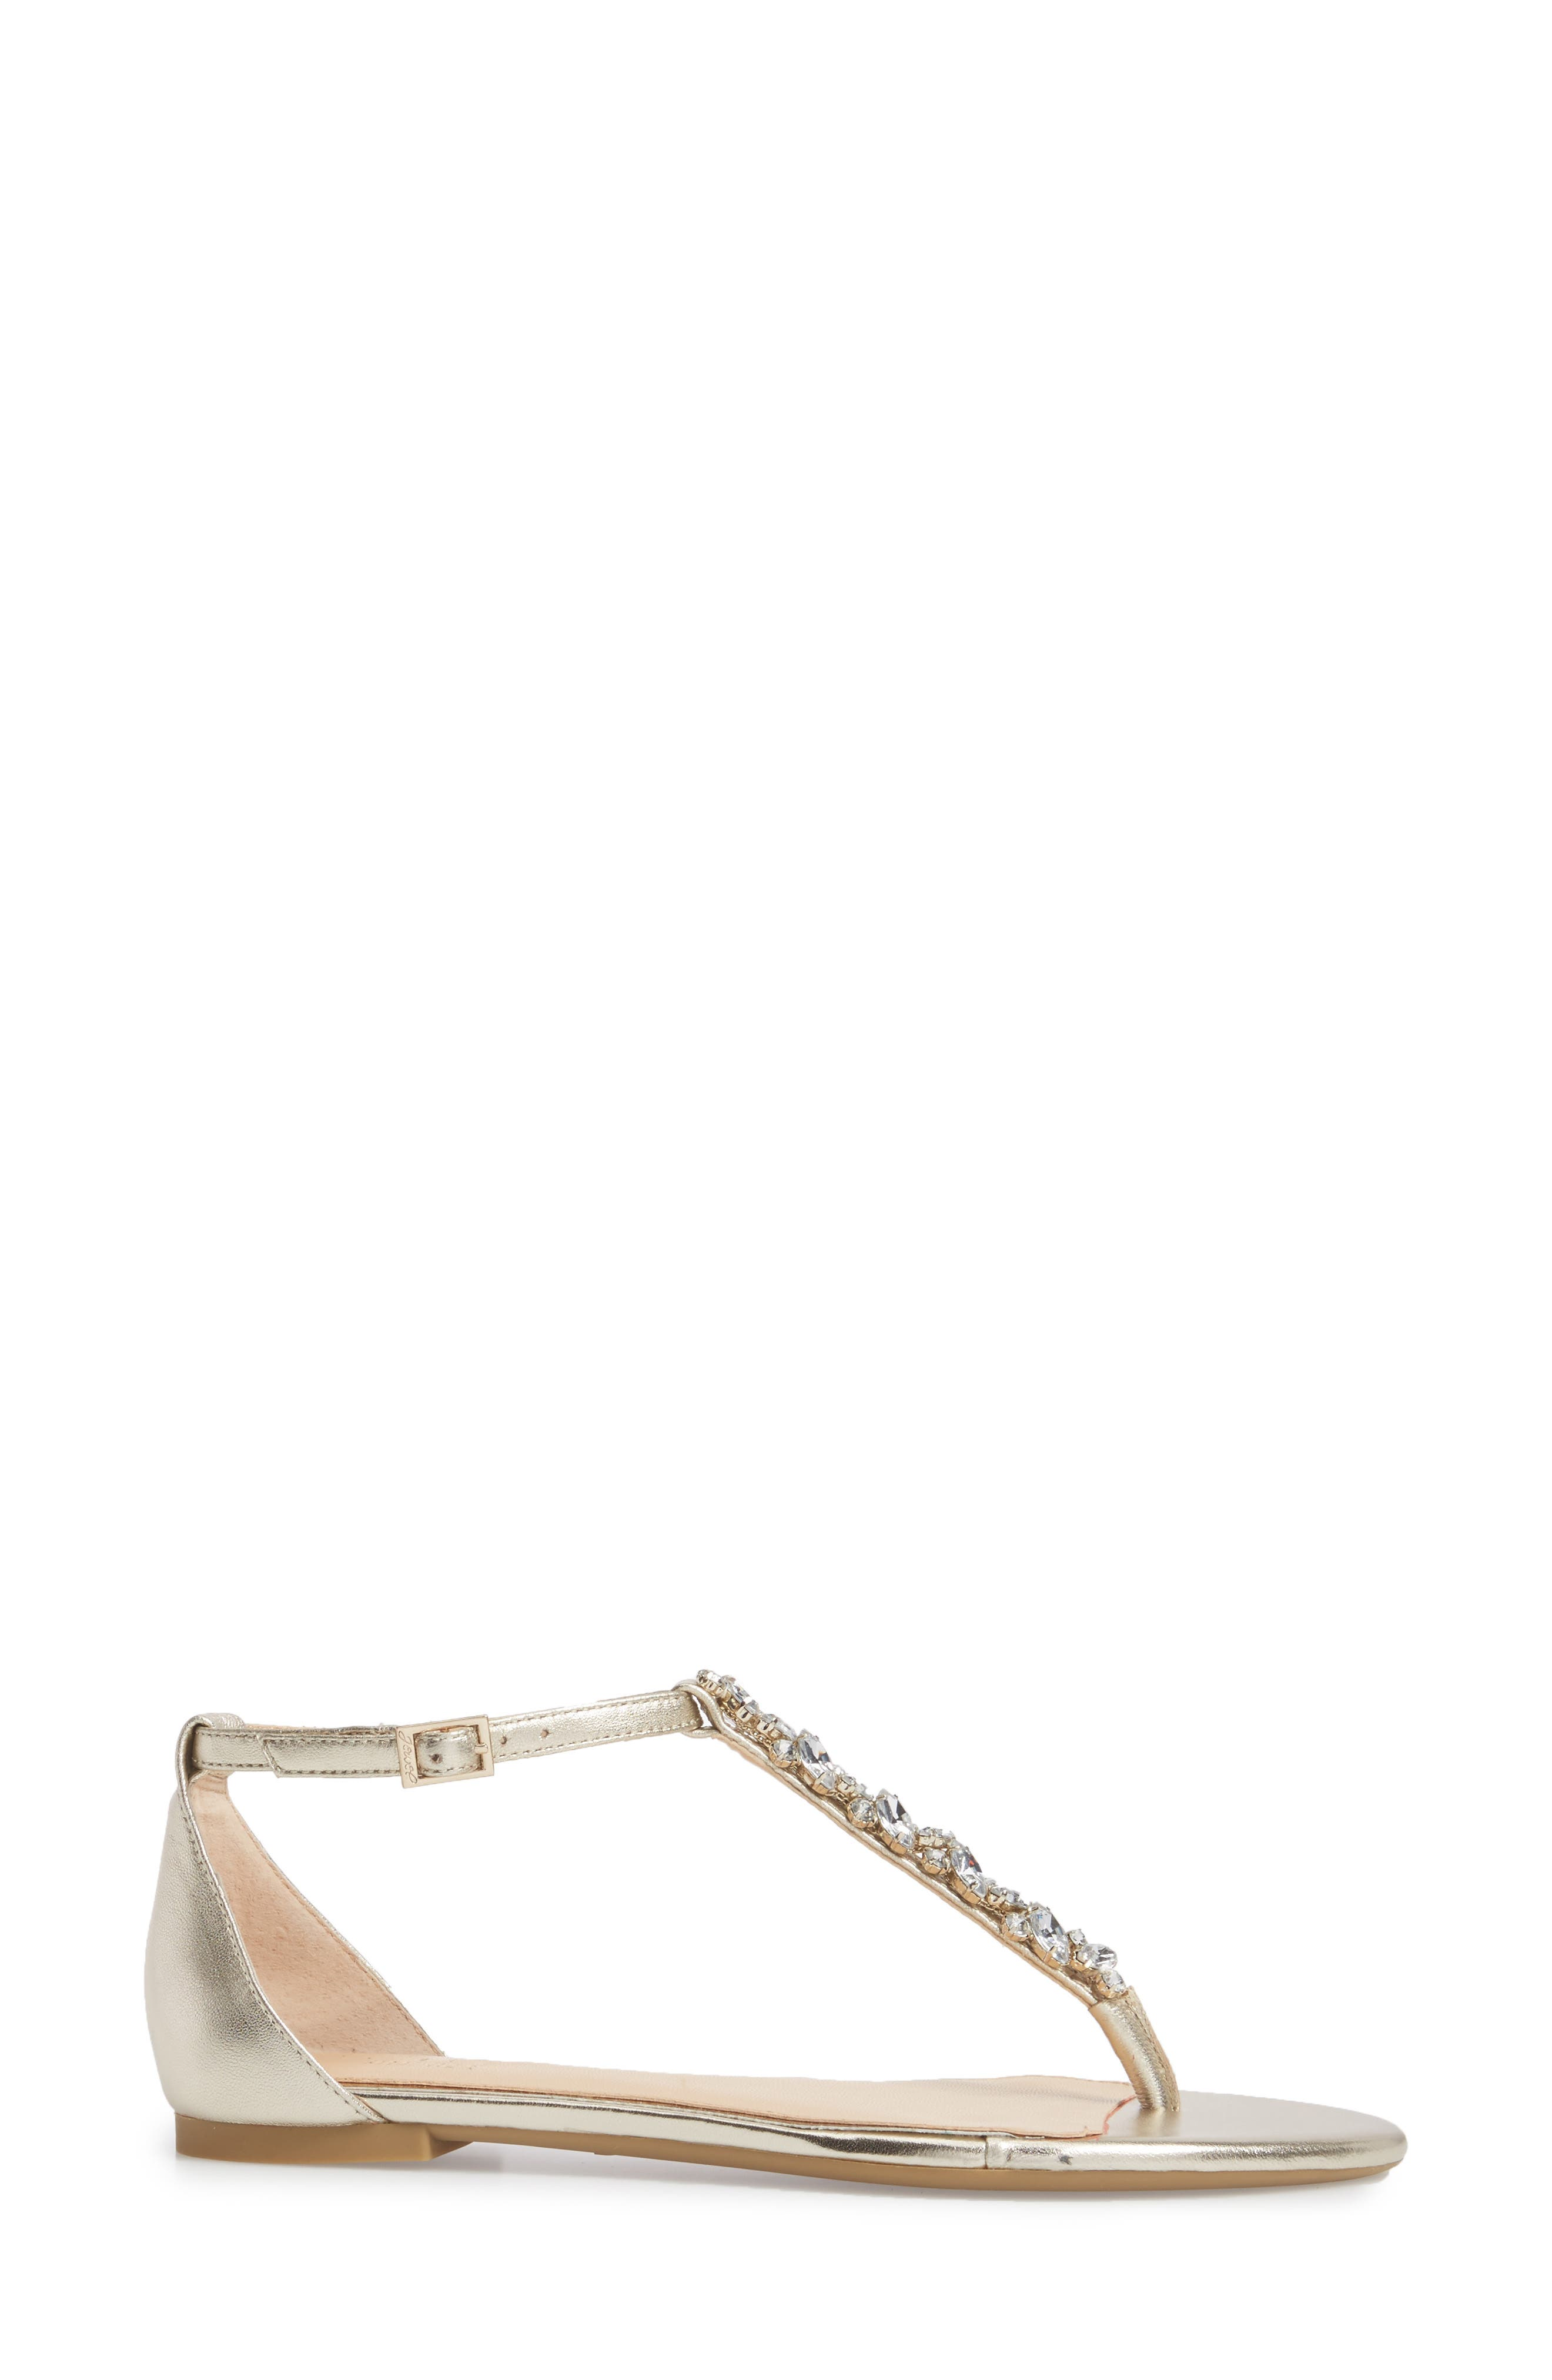 Carrol Embellished T-Strap Sandal,                             Alternate thumbnail 3, color,                             GOLD METALLIC LEATHER